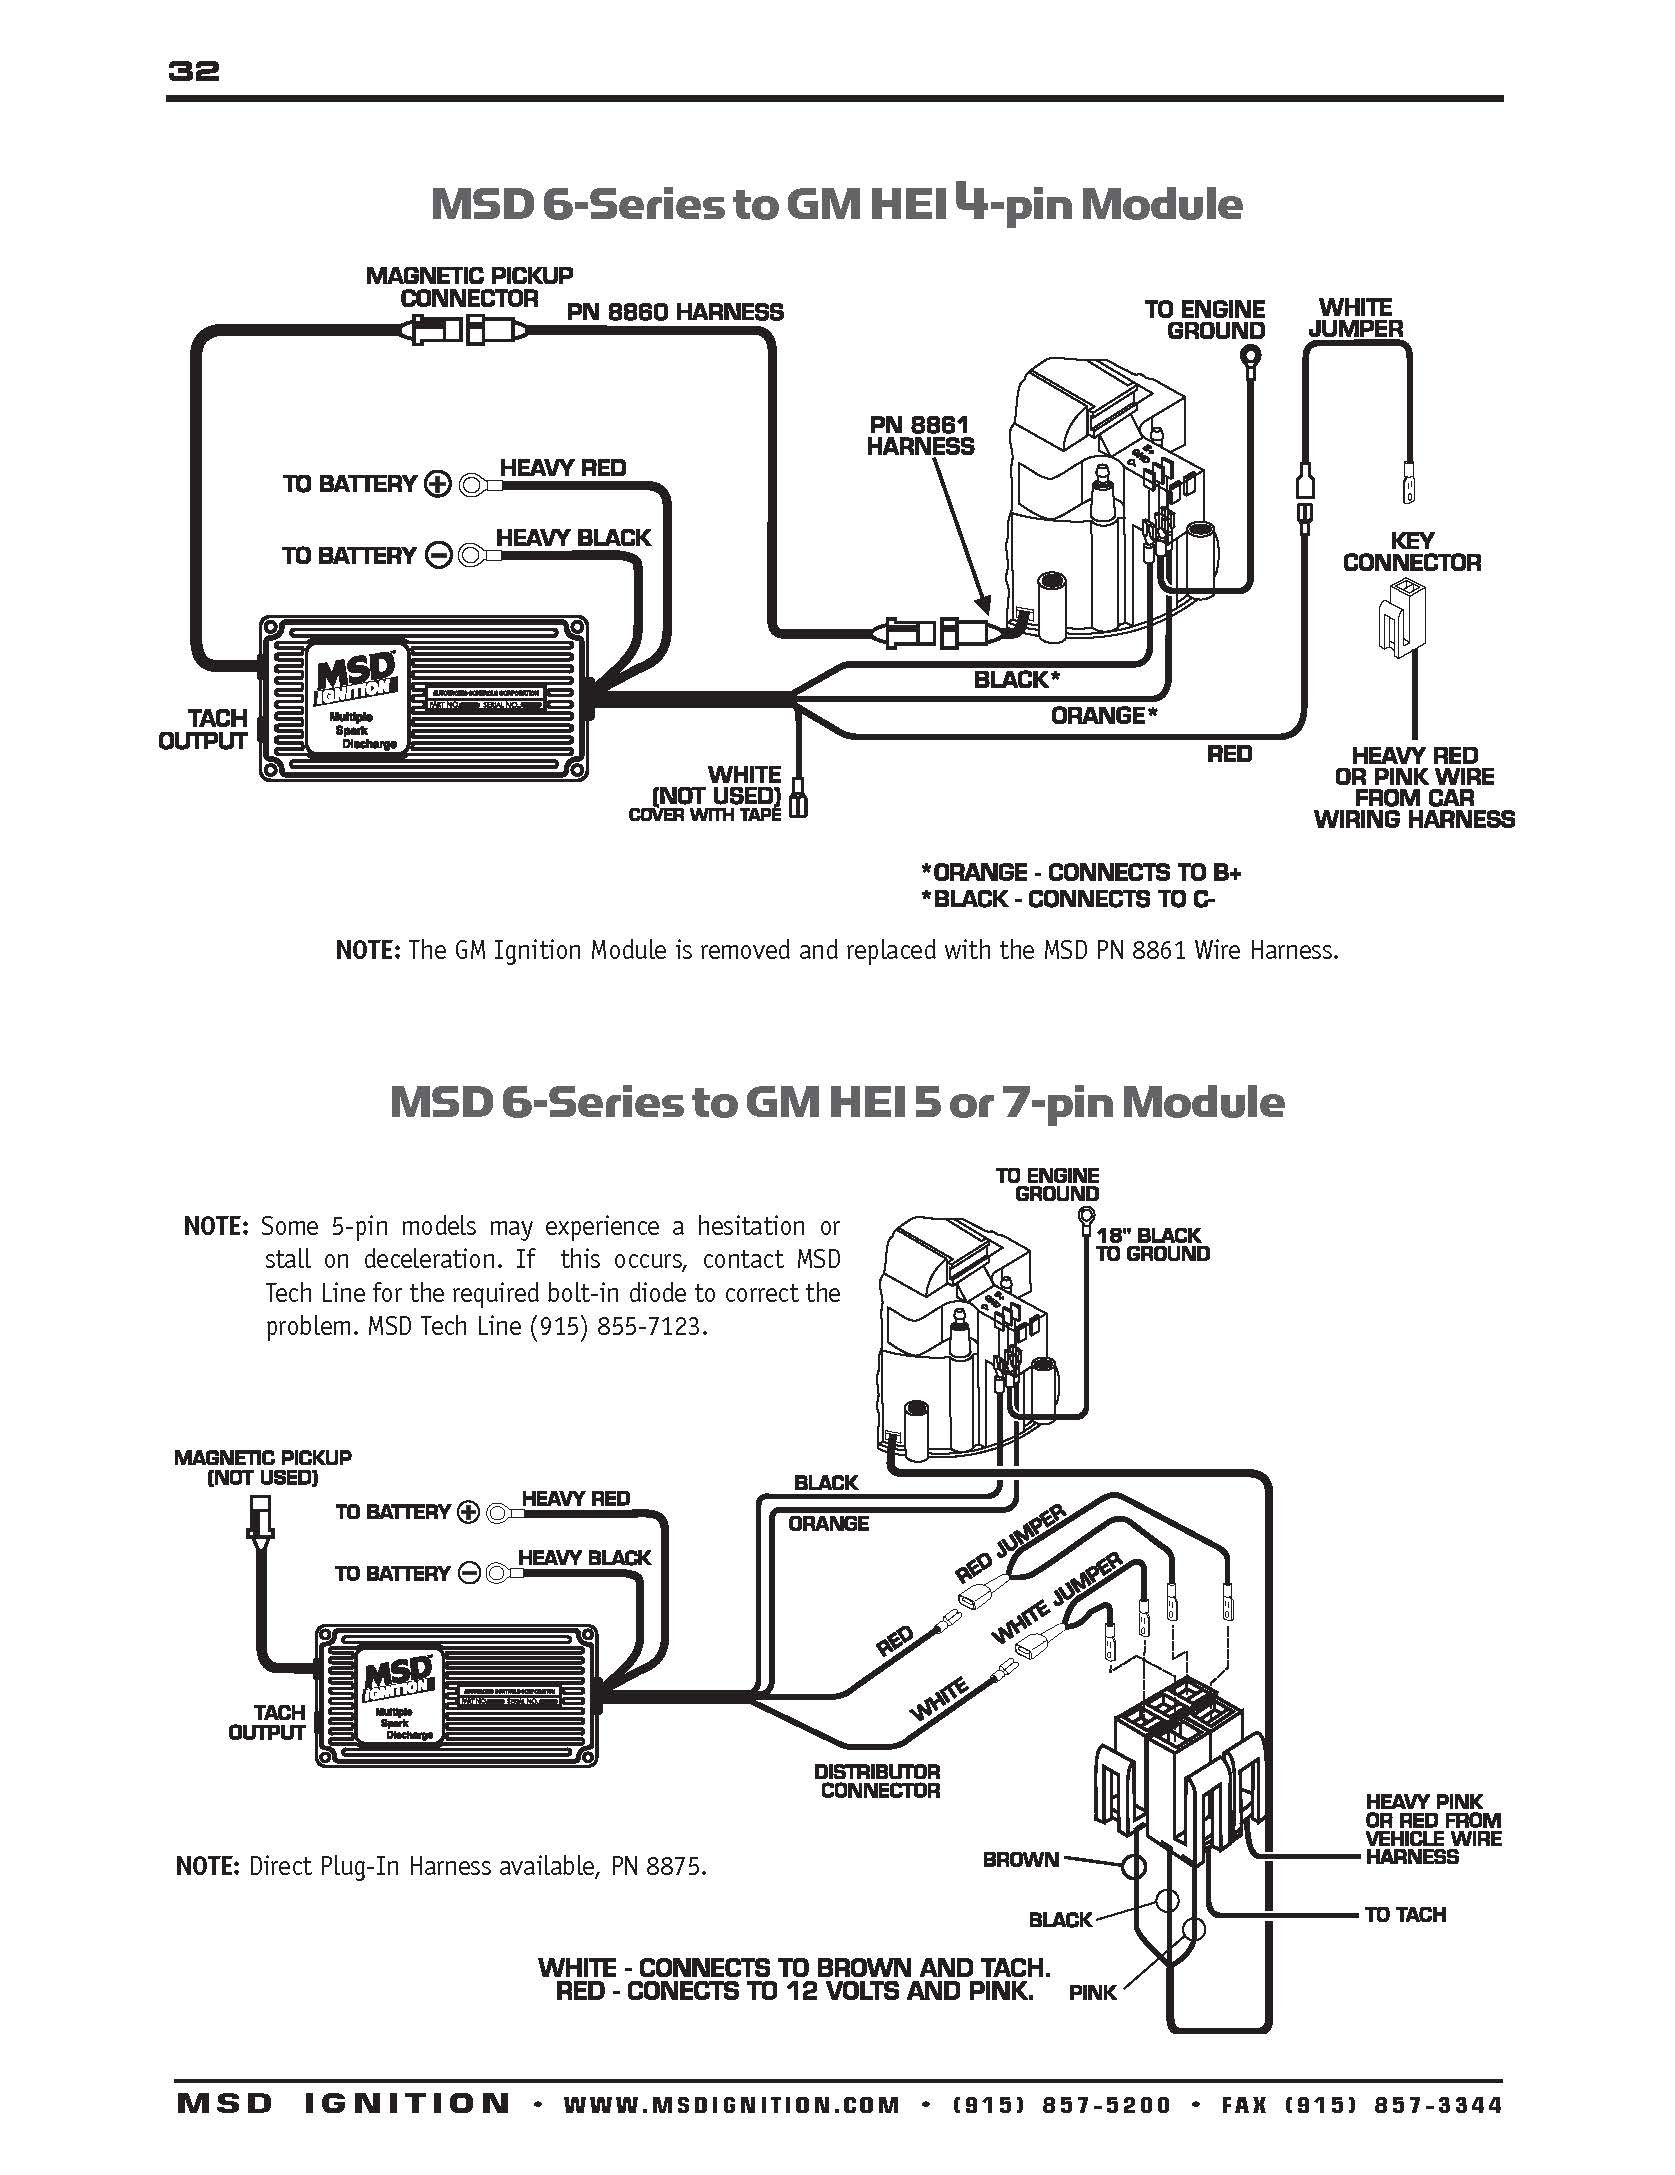 jacobs electronics wiring diagram - universal wiring diagrams  series-realize - series-realize.sceglicongusto.it  sceglicongusto.it